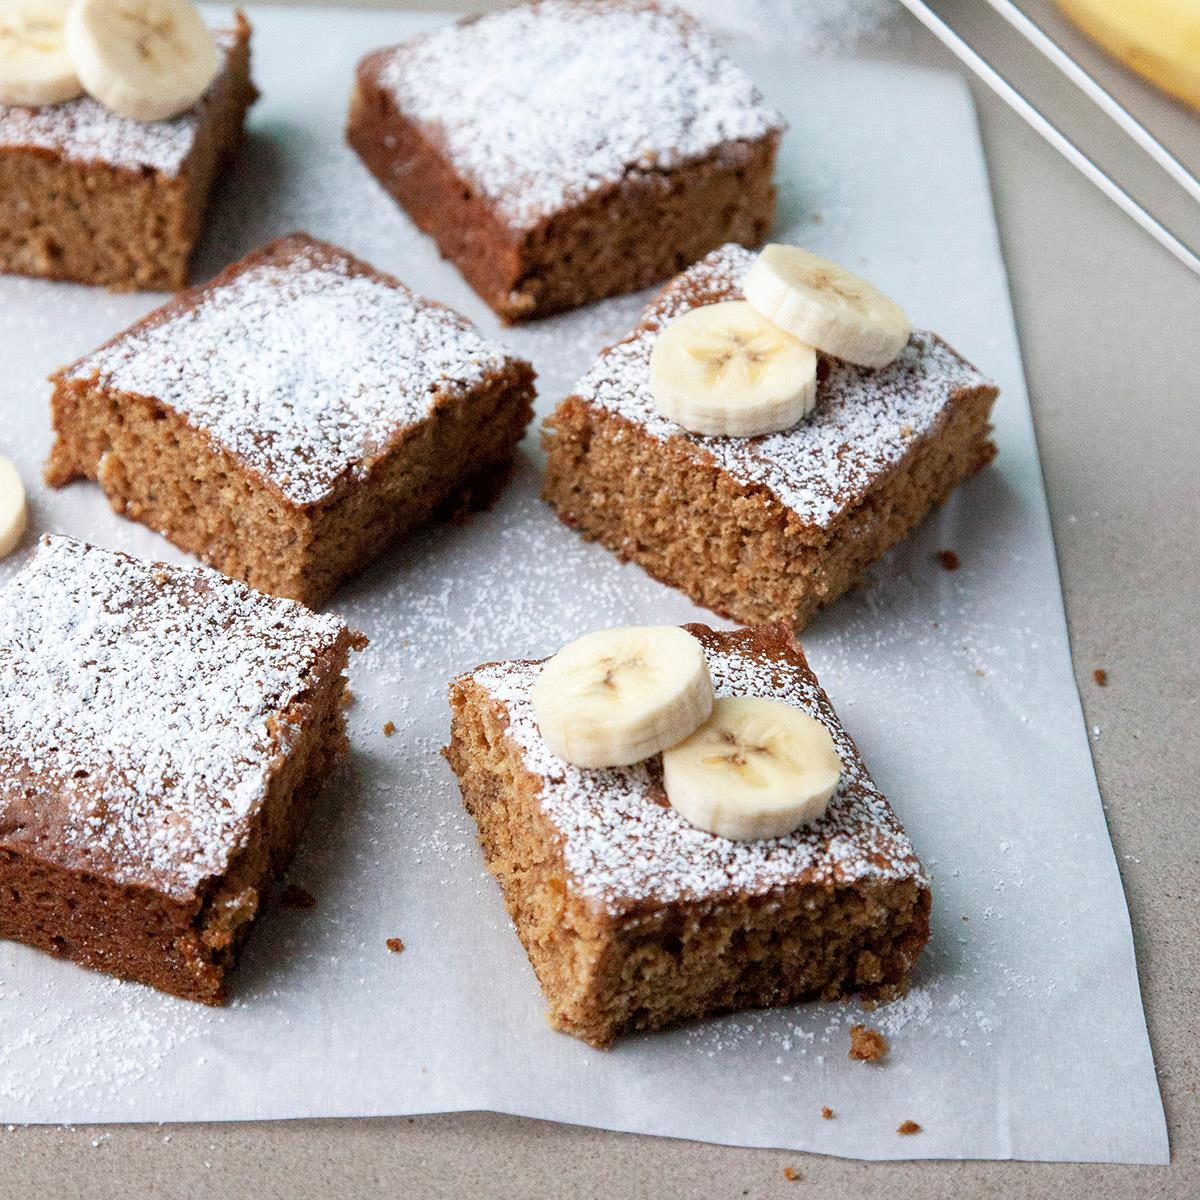 30 Ripe Banana Recipes To Use Up Your Bunch Taste Of Home